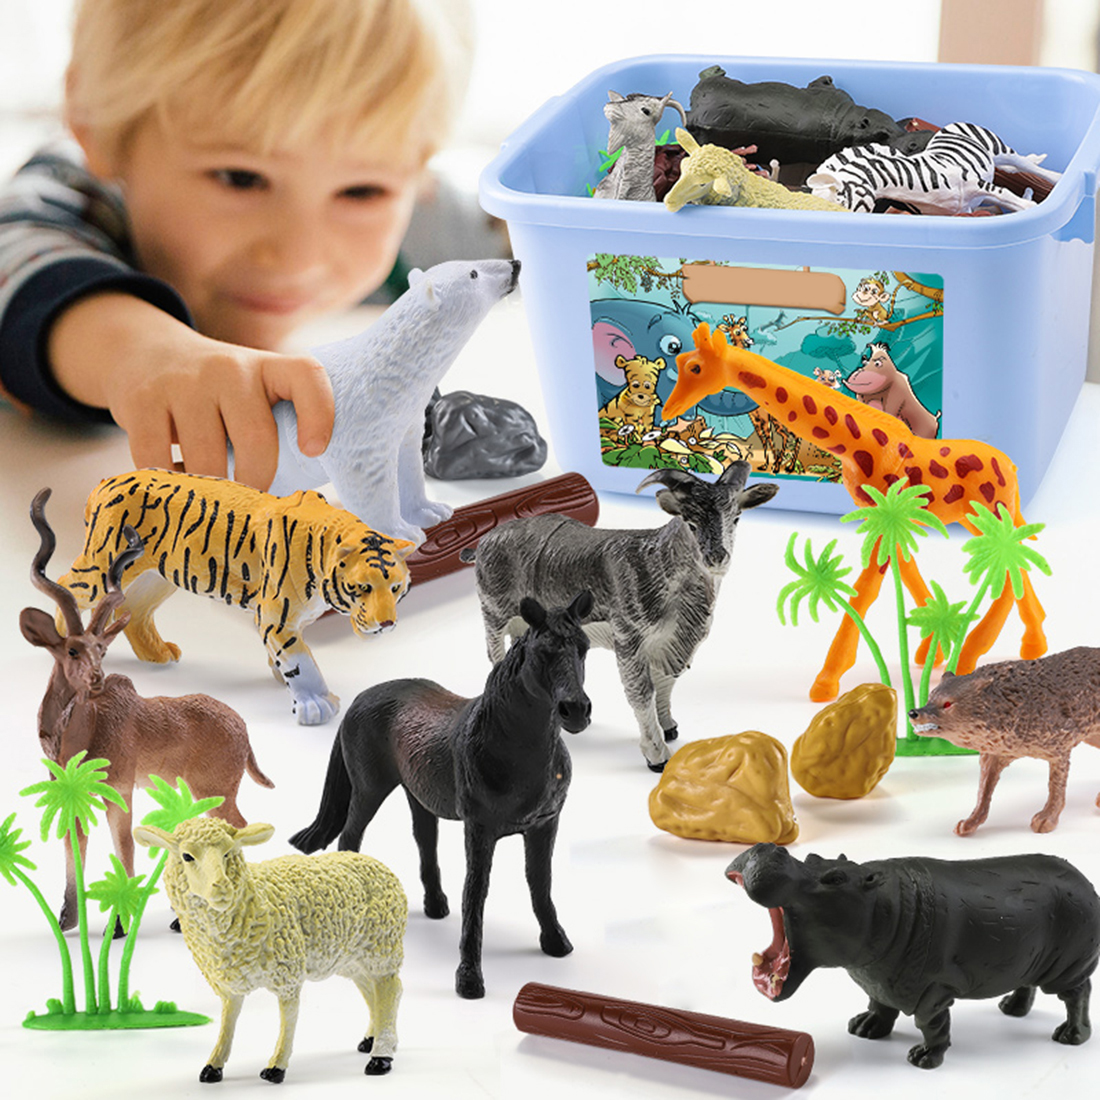 Toy Simulation-Animals Model for Age More Than-3 44pcs Cognitive-Toy Learning-Set Playing